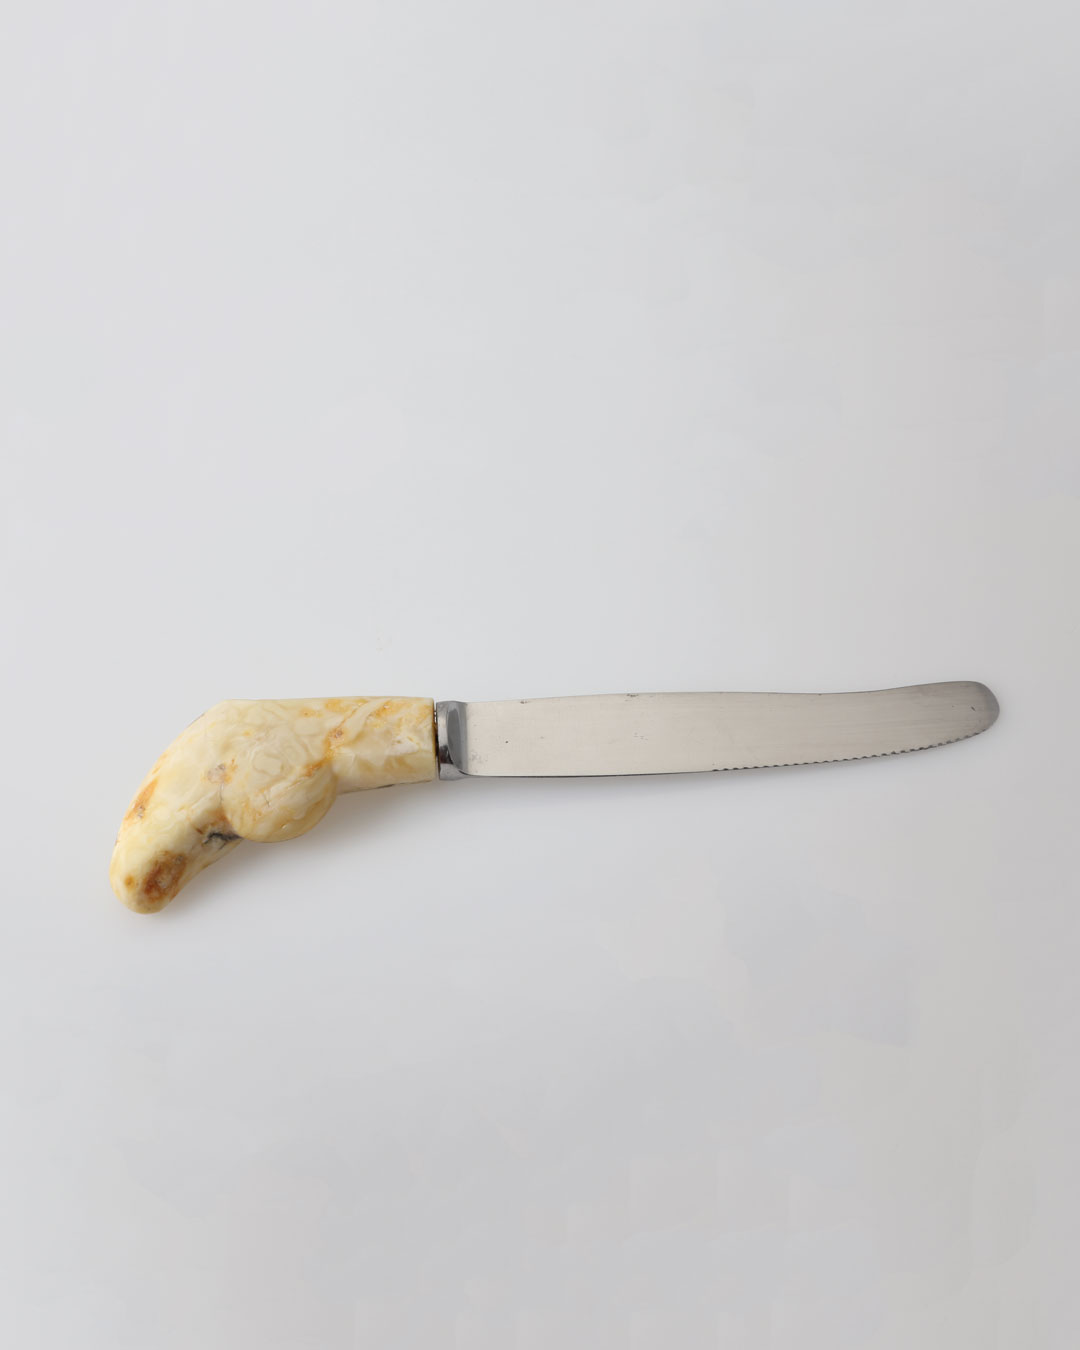 Juliane Brandes, untitled, 2012, knife; amber, steel, 175 x 40 x 15 mm, €1090